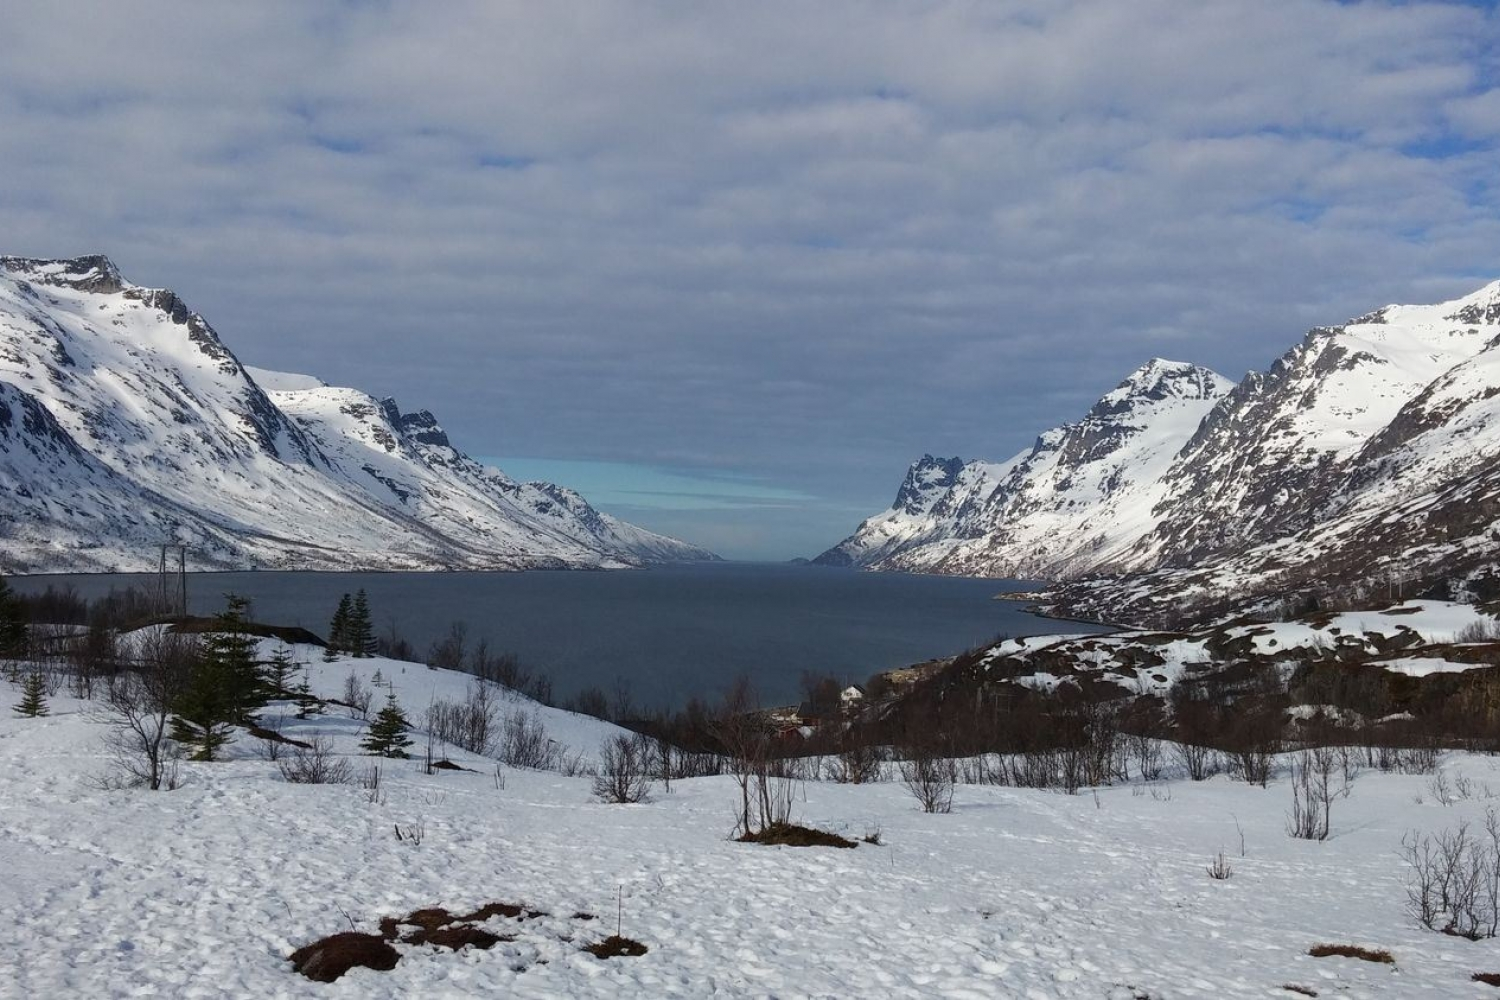 Fjord surrounded by snowy mountains